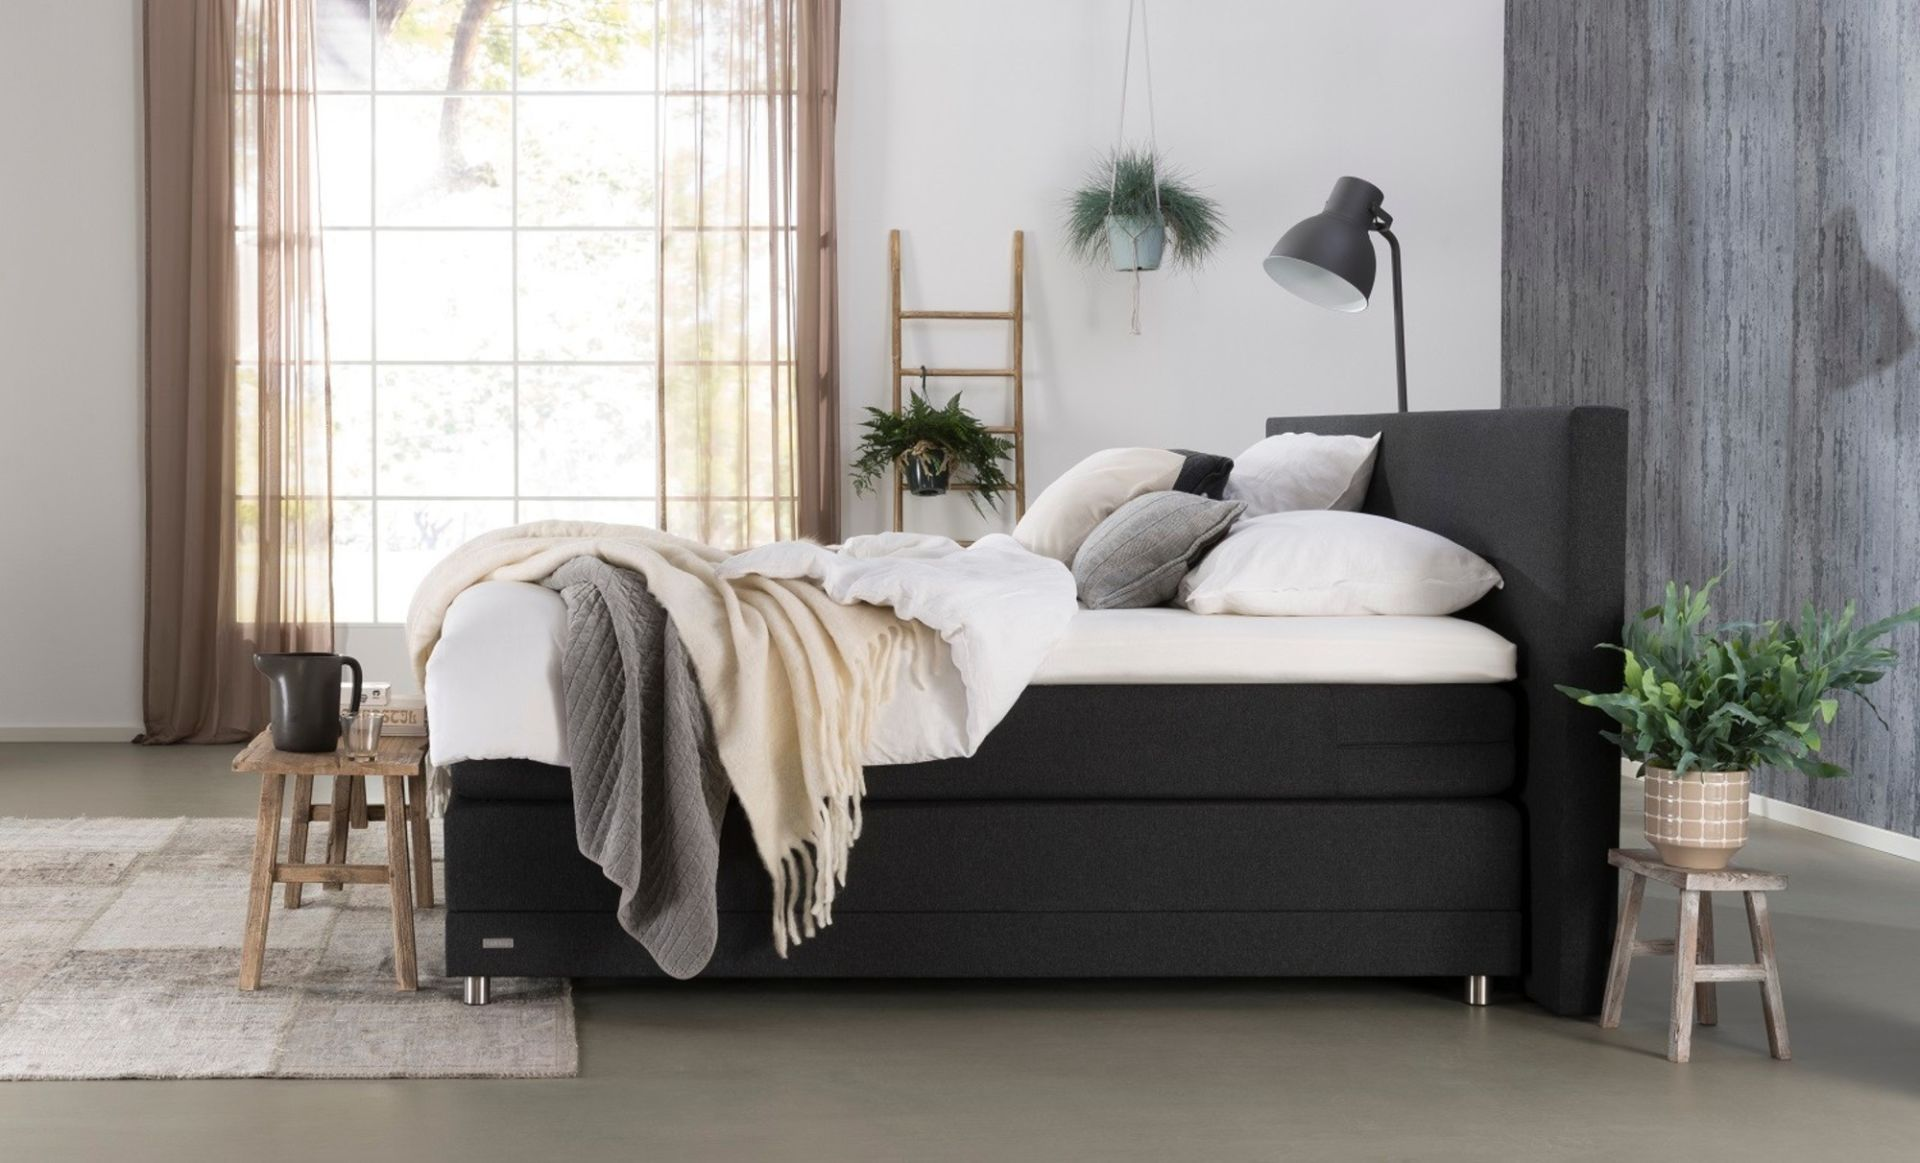 OptiSleep boxspring 1000 in Antraciet | pocketvering matrassen | recht hoofdbord